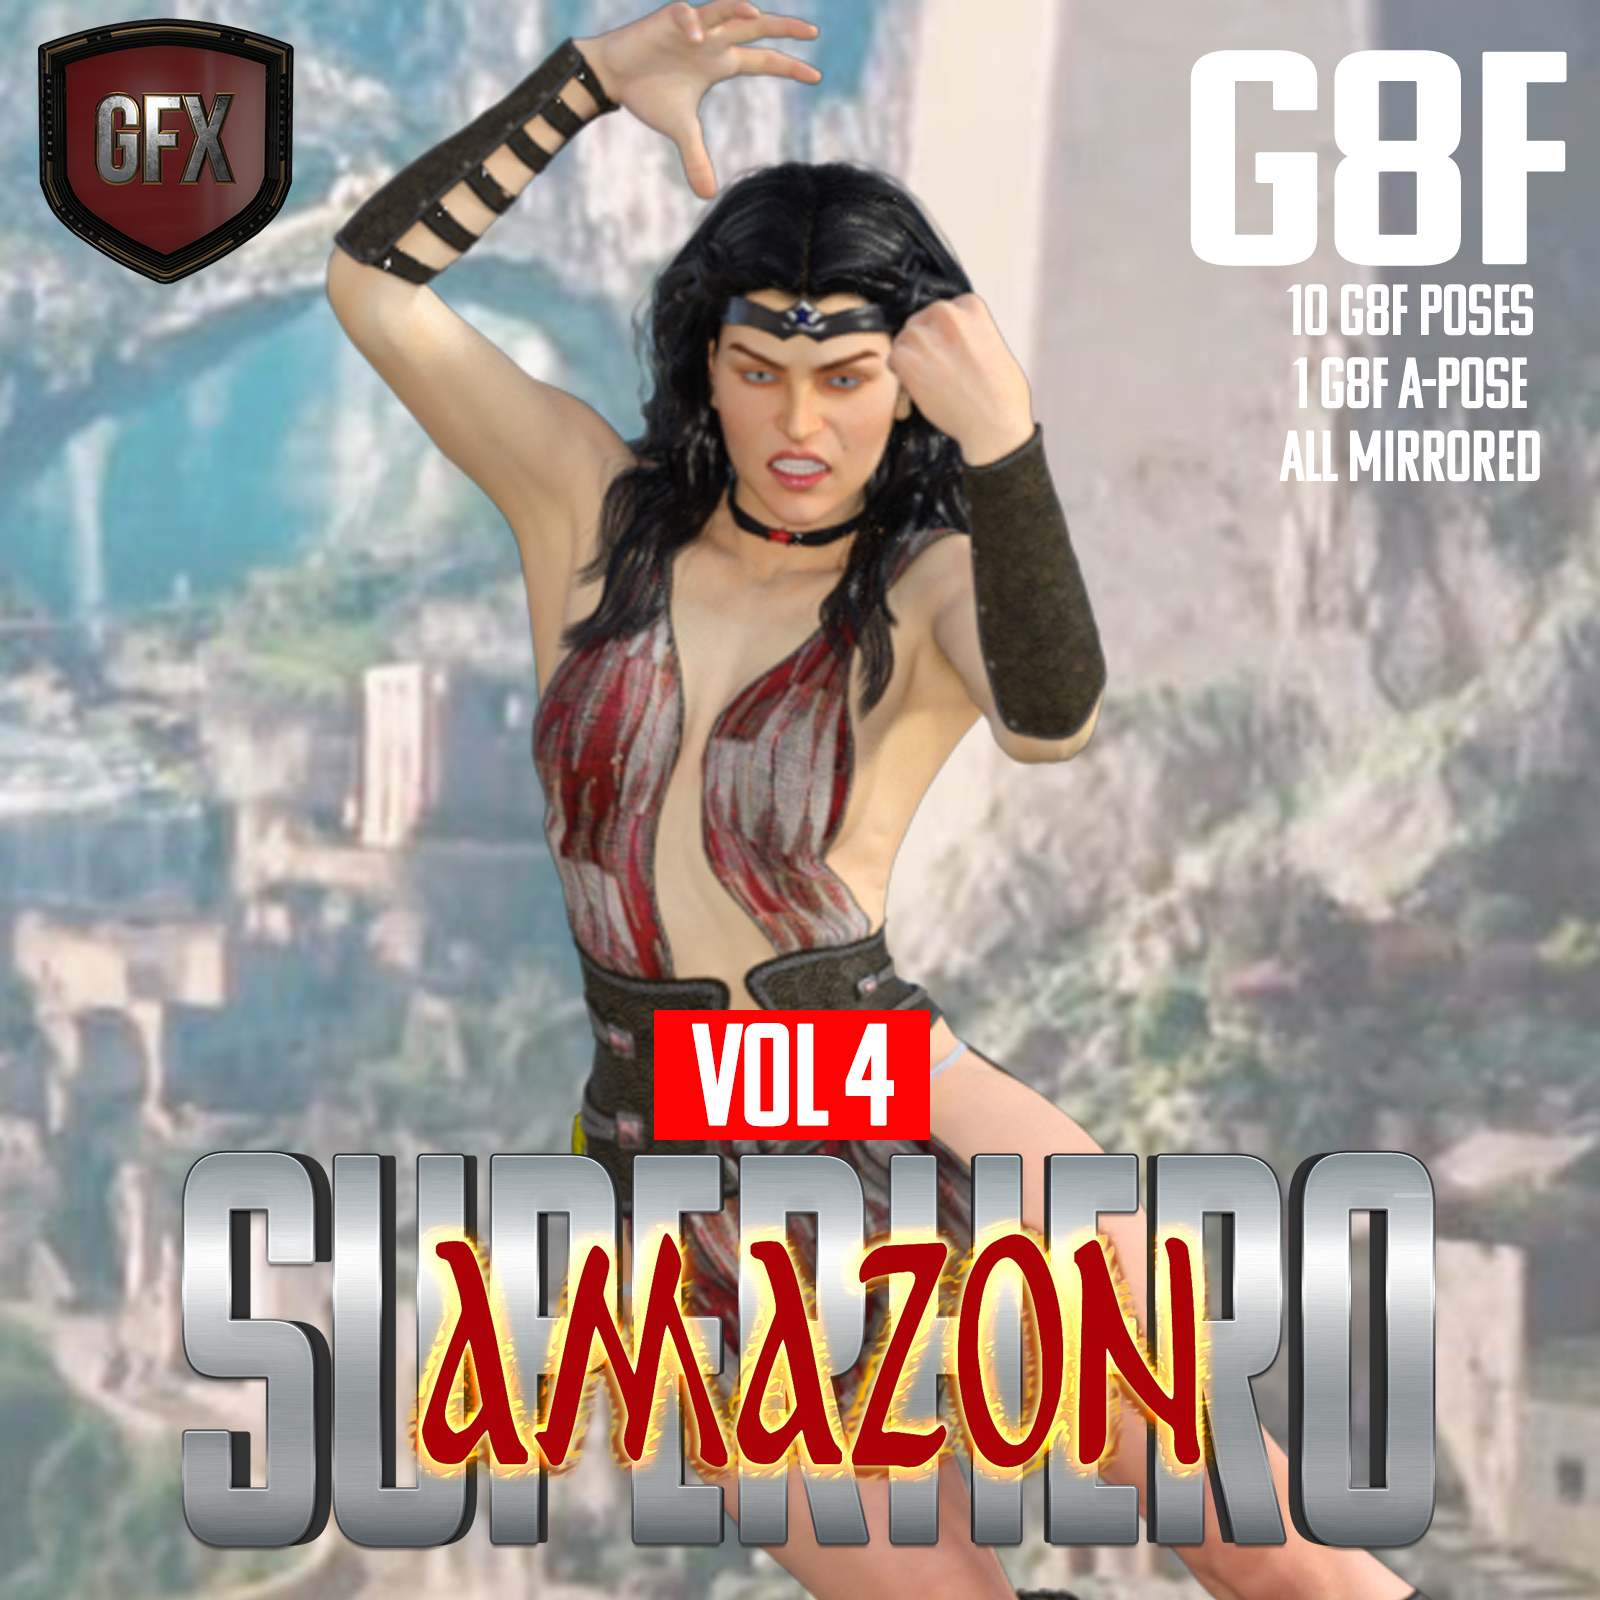 SuperHero Amazon for G8F Volume 4 by GriffinFX